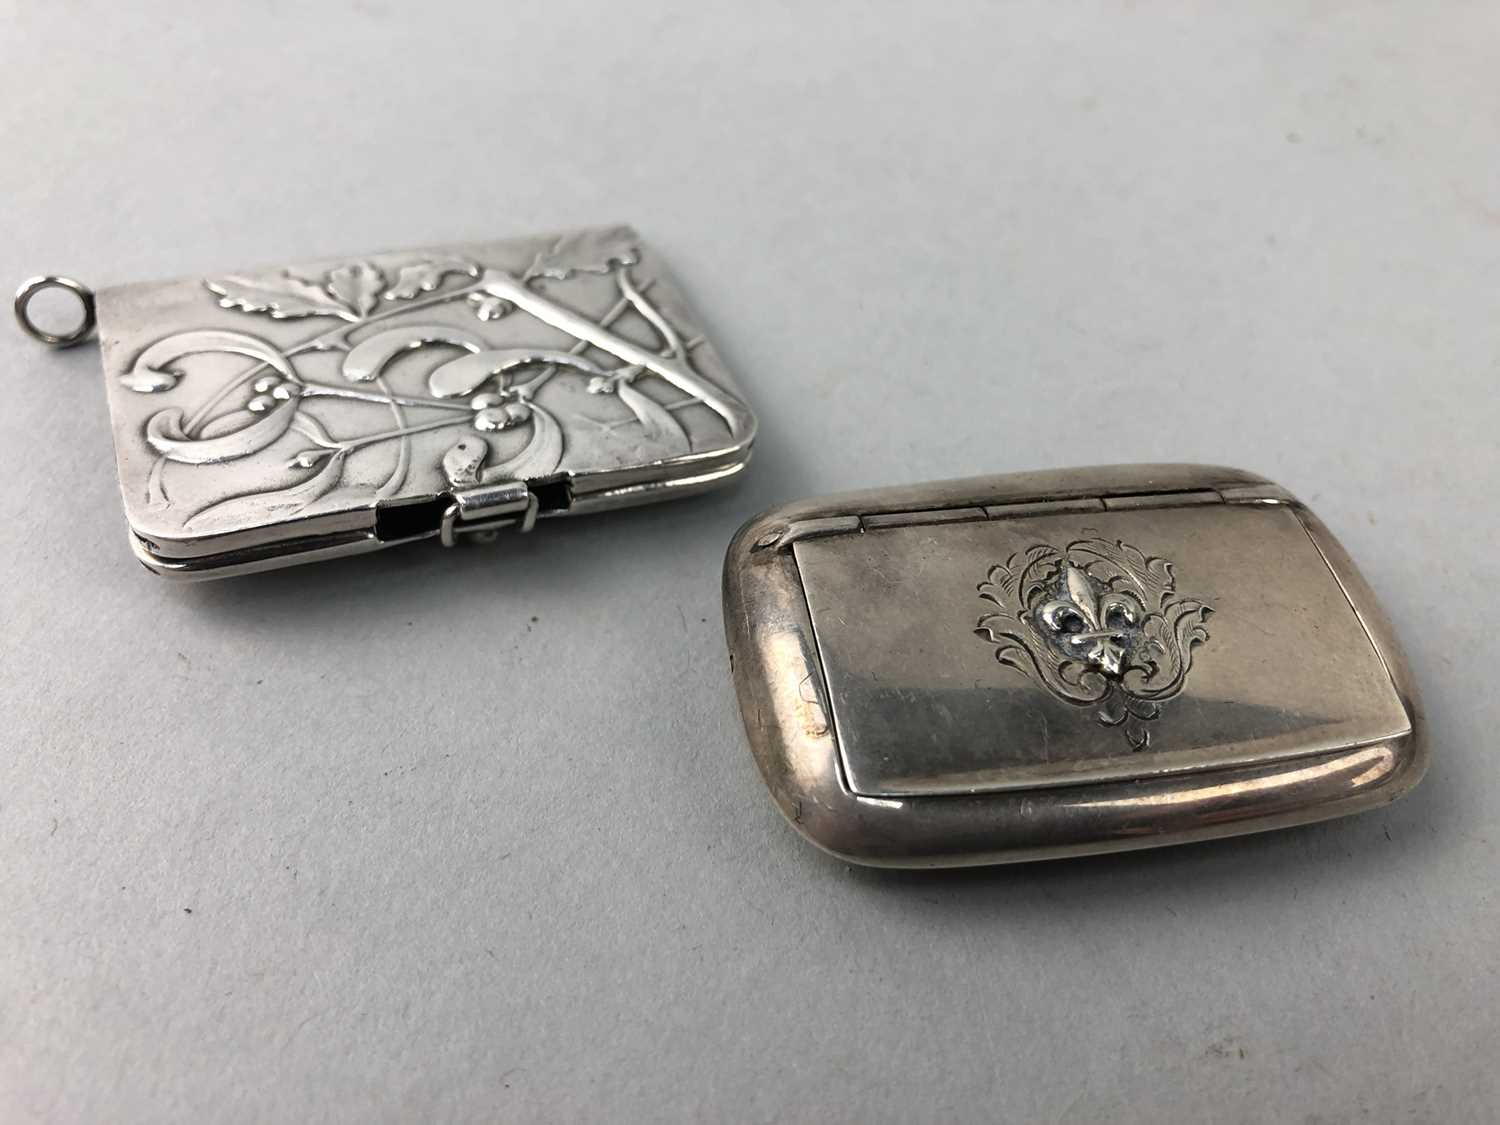 Lot 43 - A 19TH CENTURY SILVER PILL BOX AND A SILVER MATCH HOLDER